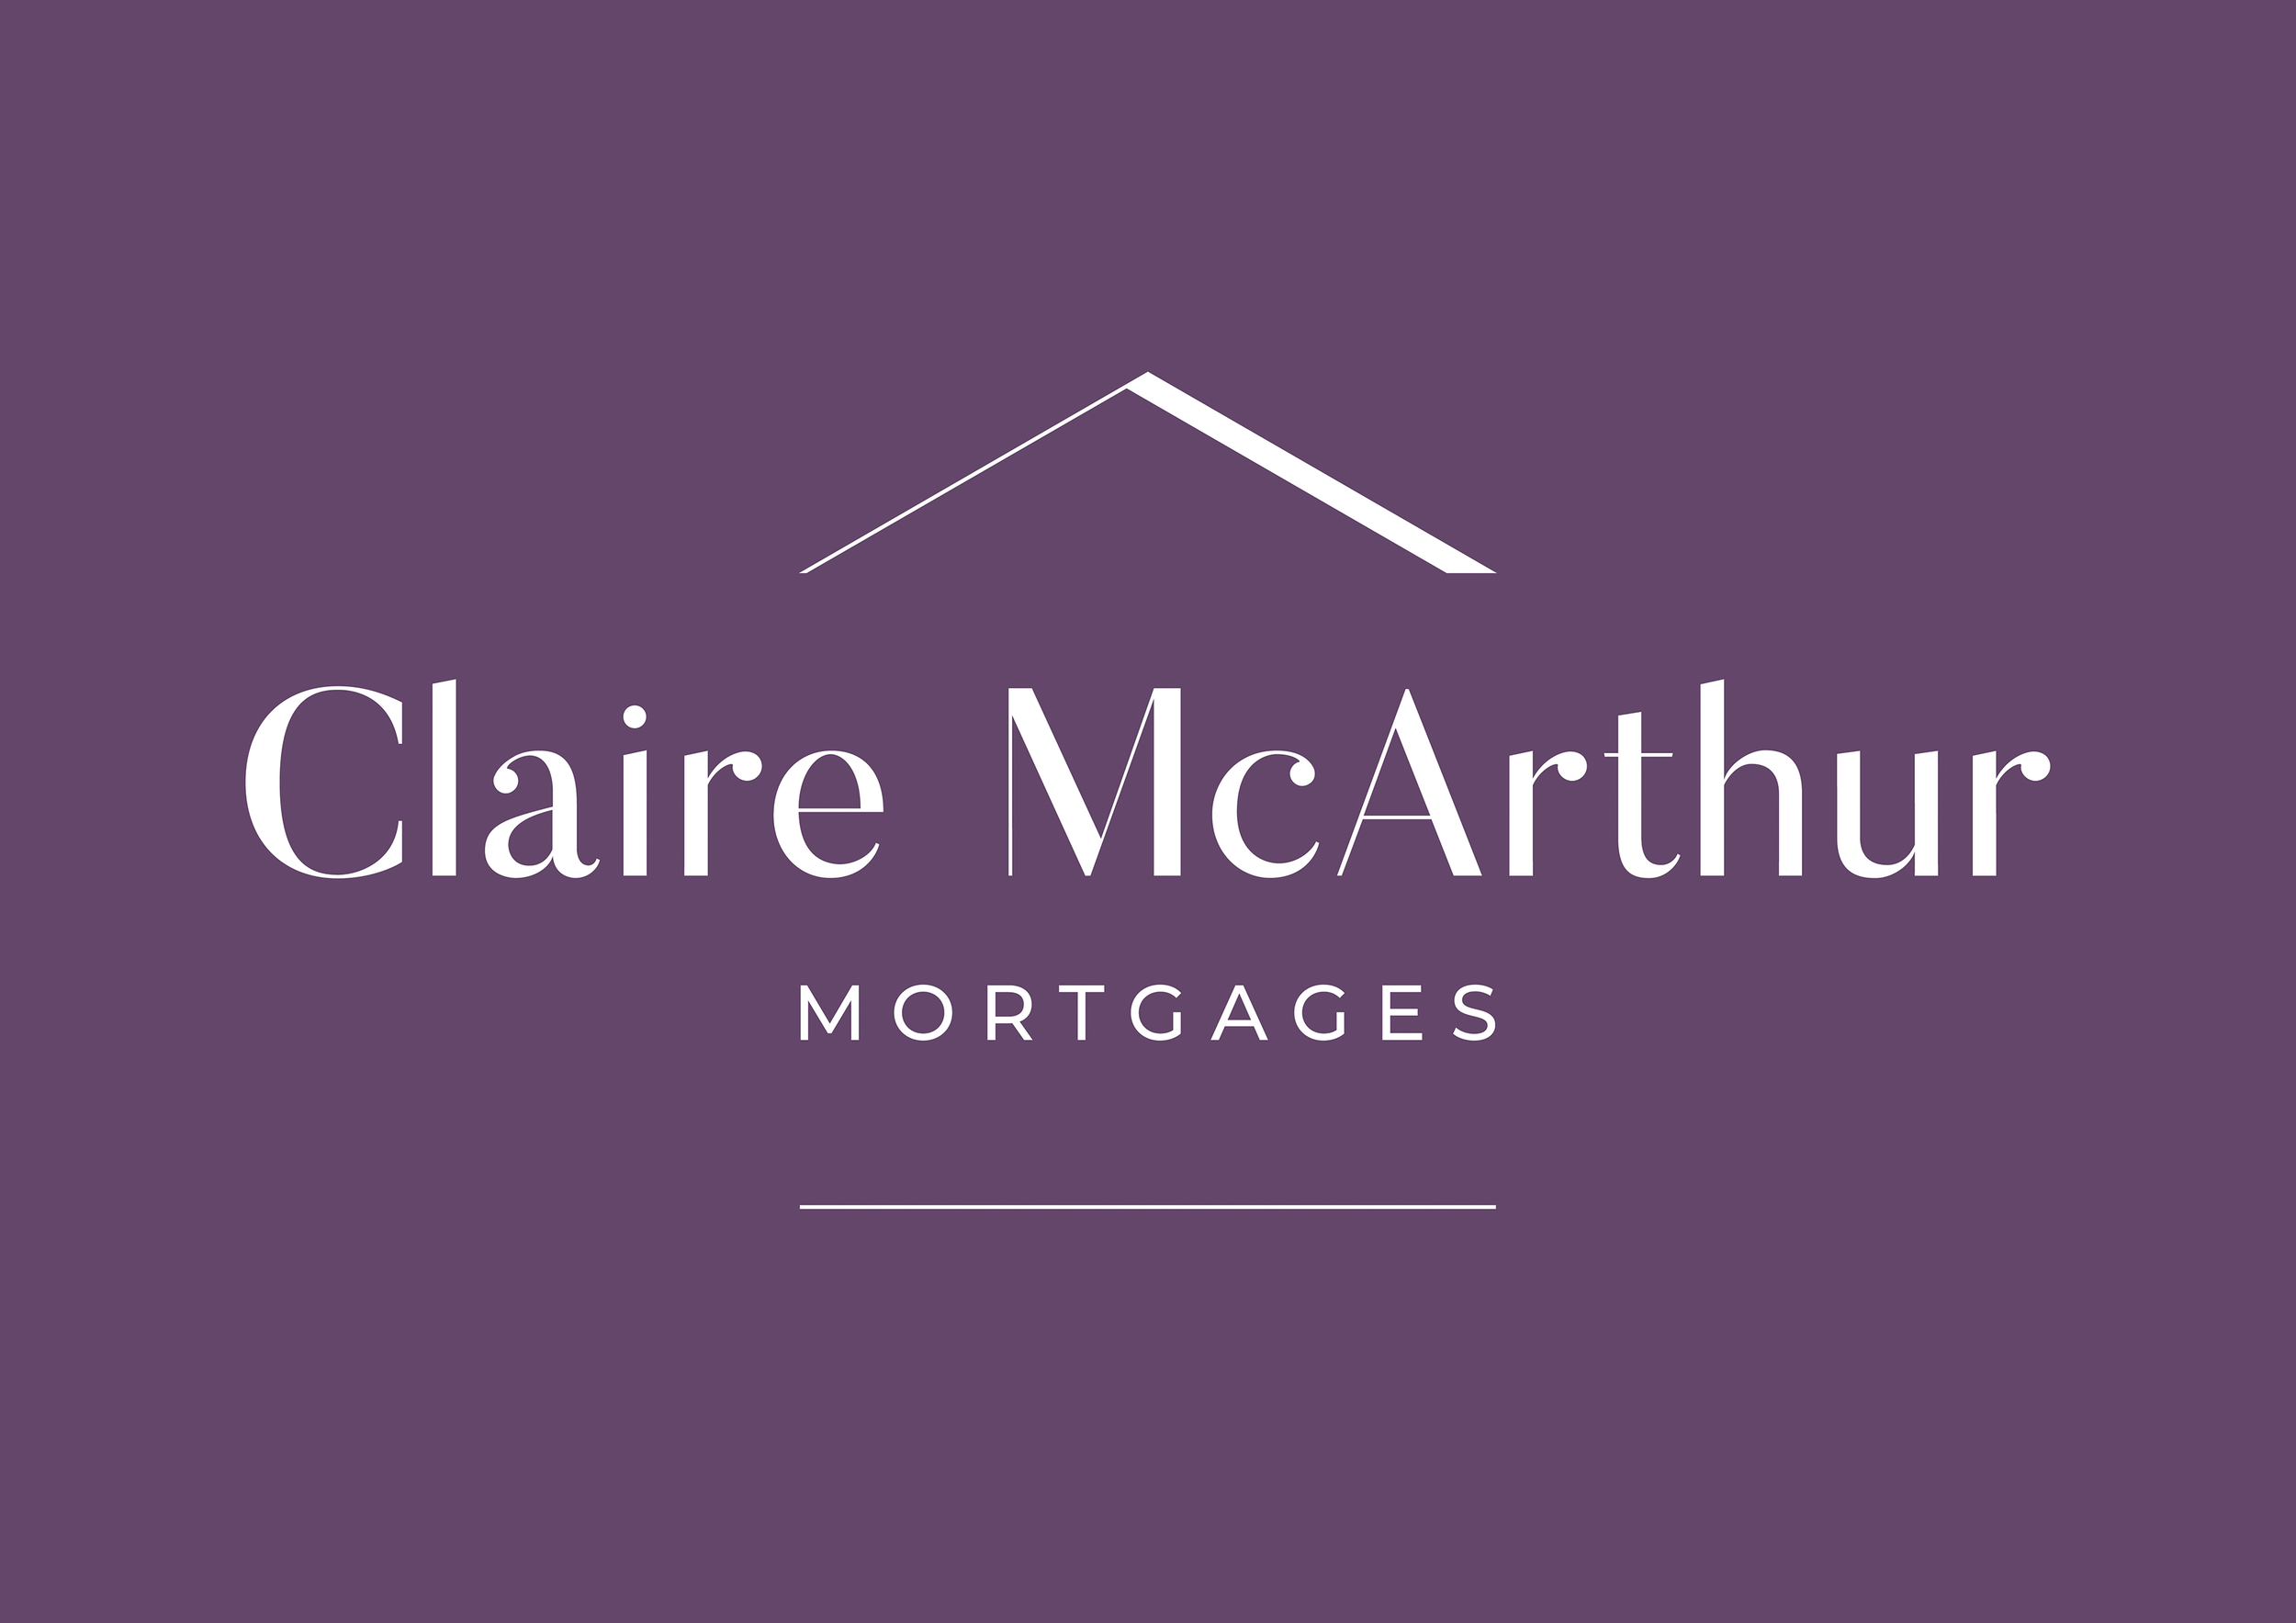 Hi, I'm Claire & your 'go to' when it comes to all things home loans!    As a mortgage broker local to the Papakura & Franklin area, getting to work with people is undoubtedly the best part of my job. From first home buyers to new business ventures, I get to meet clients from all walks of life and tailor solutions to each situation. With my experience in the banking and finance world, I've created relationships with a posse of trusted professionals all helping to secure your dream home or propert y.    A keen social runner & dog walker, I love soaking up some sunshine with my nearest & dearest. I am proud to support this local fun, supporting a good cause and getting local families up, out & moving!